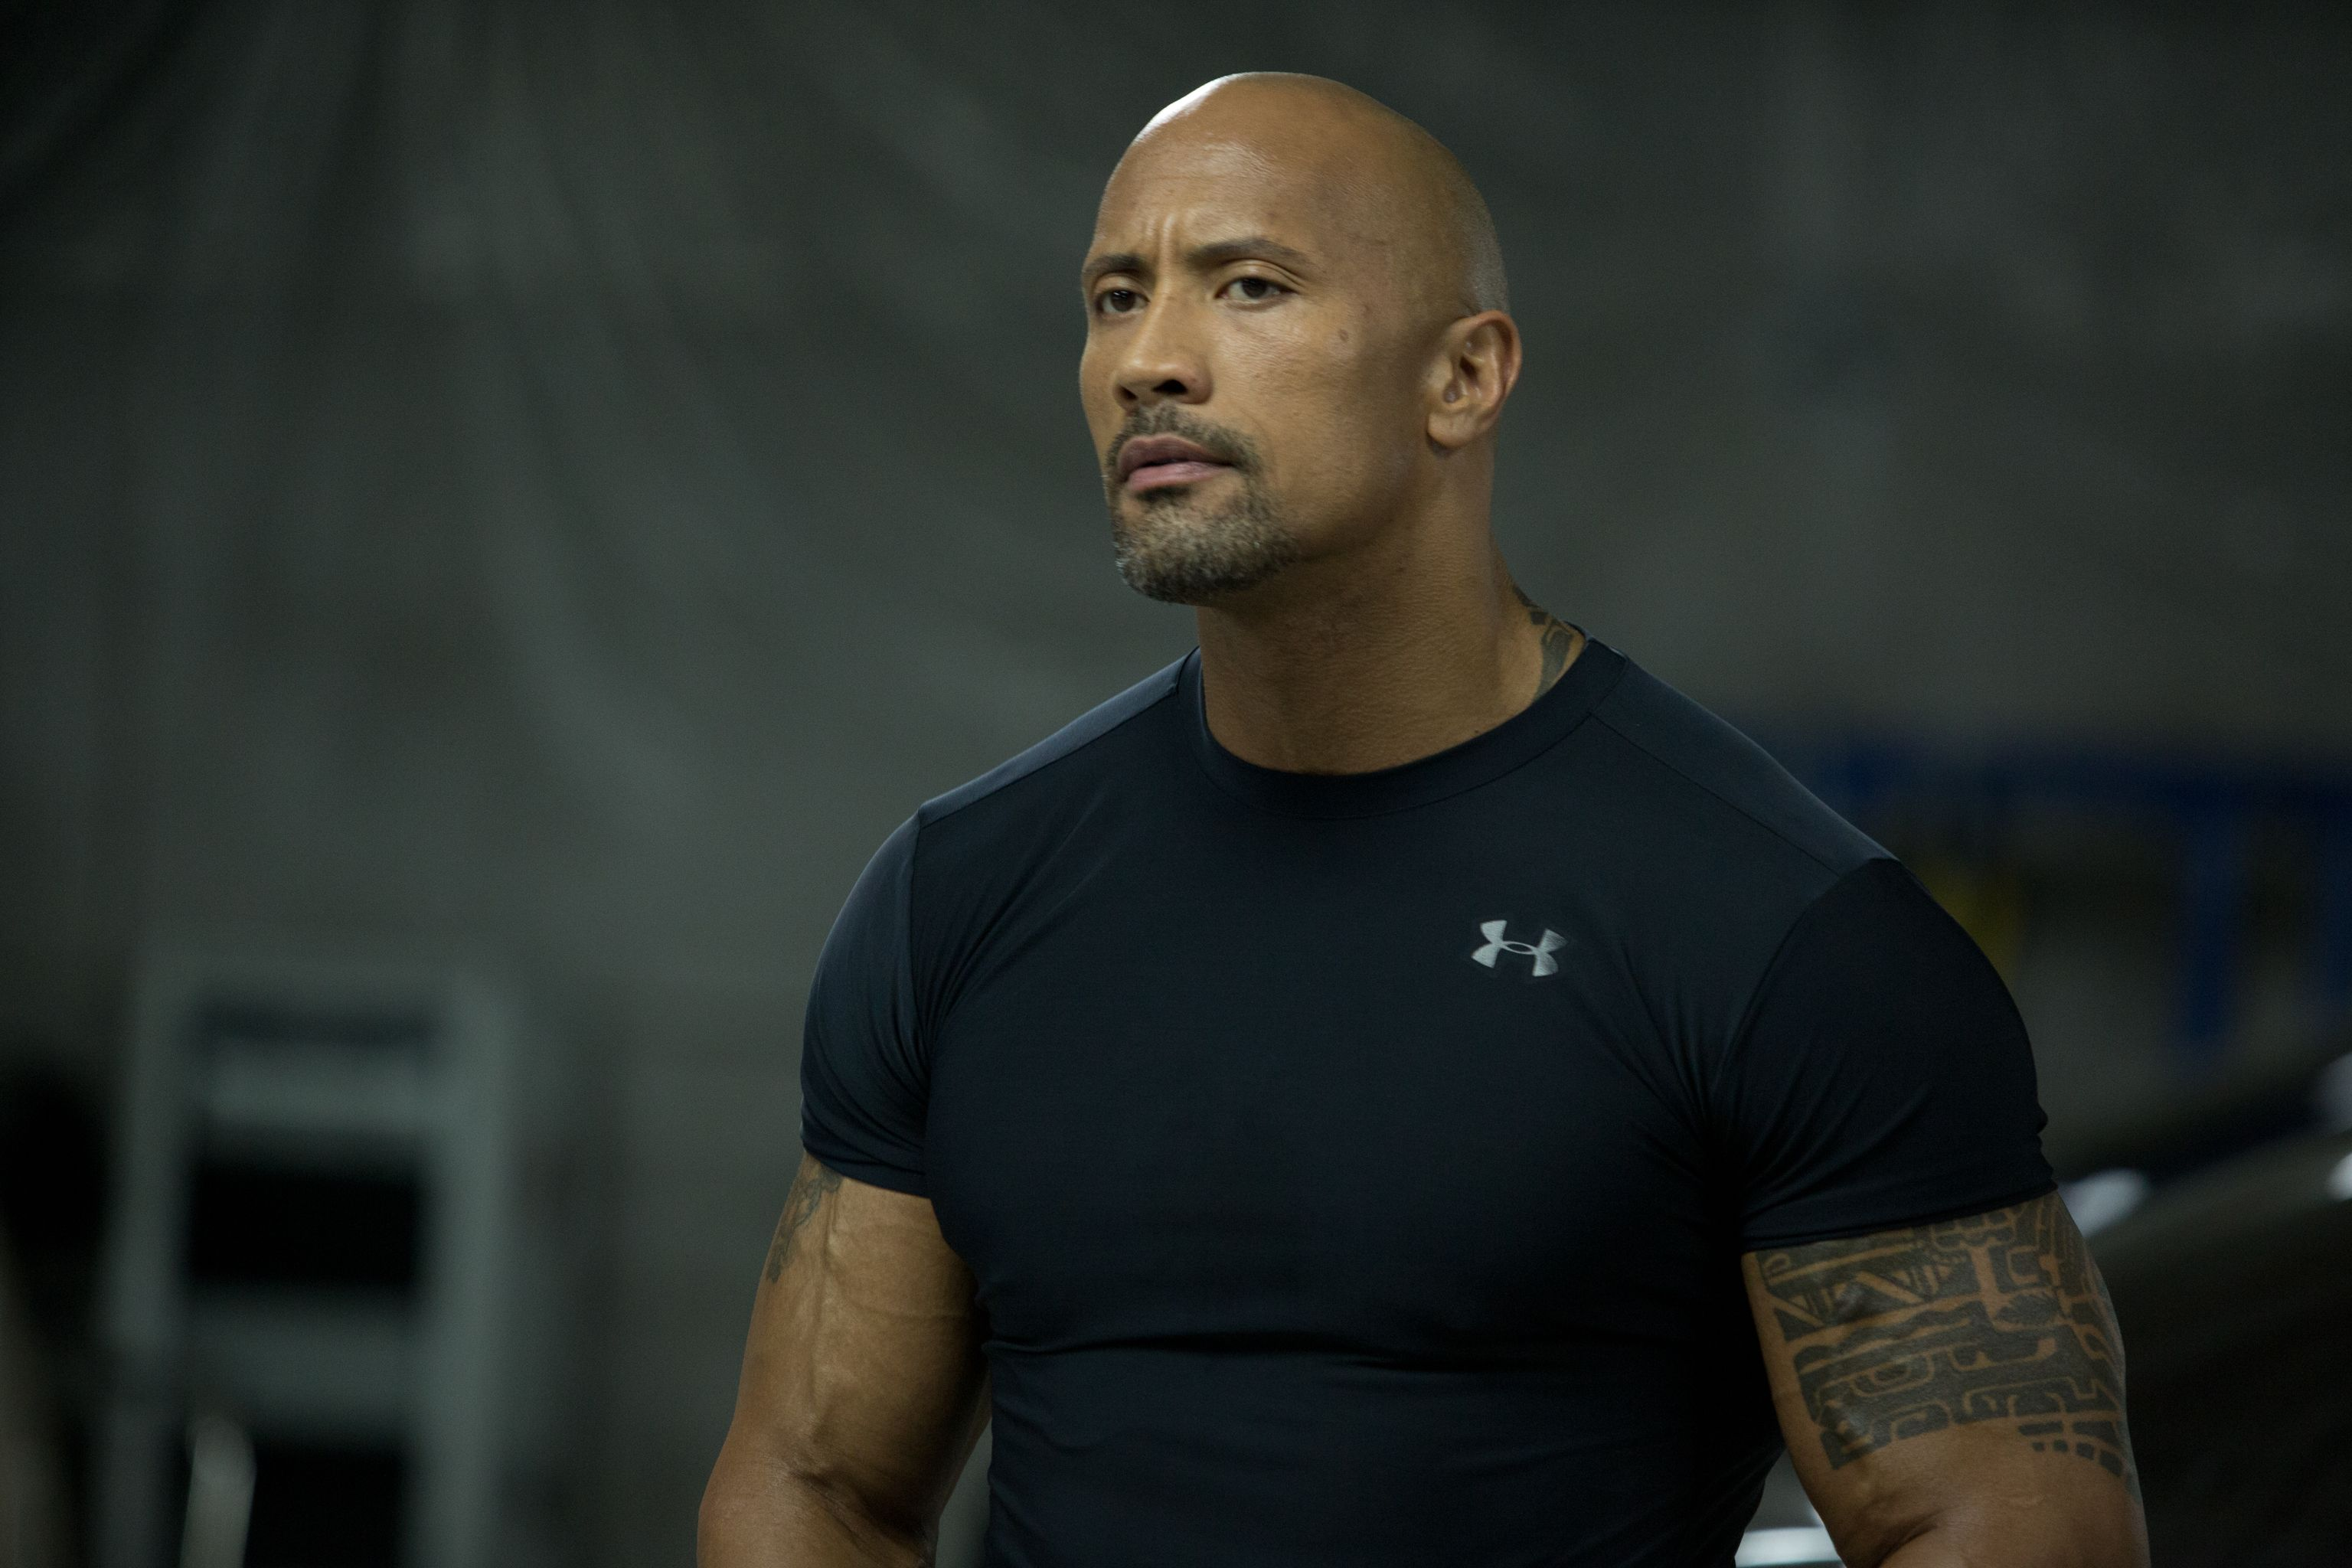 Fast & Furious 8: Dwayne Johnson Goes on NSFW Rant in Video